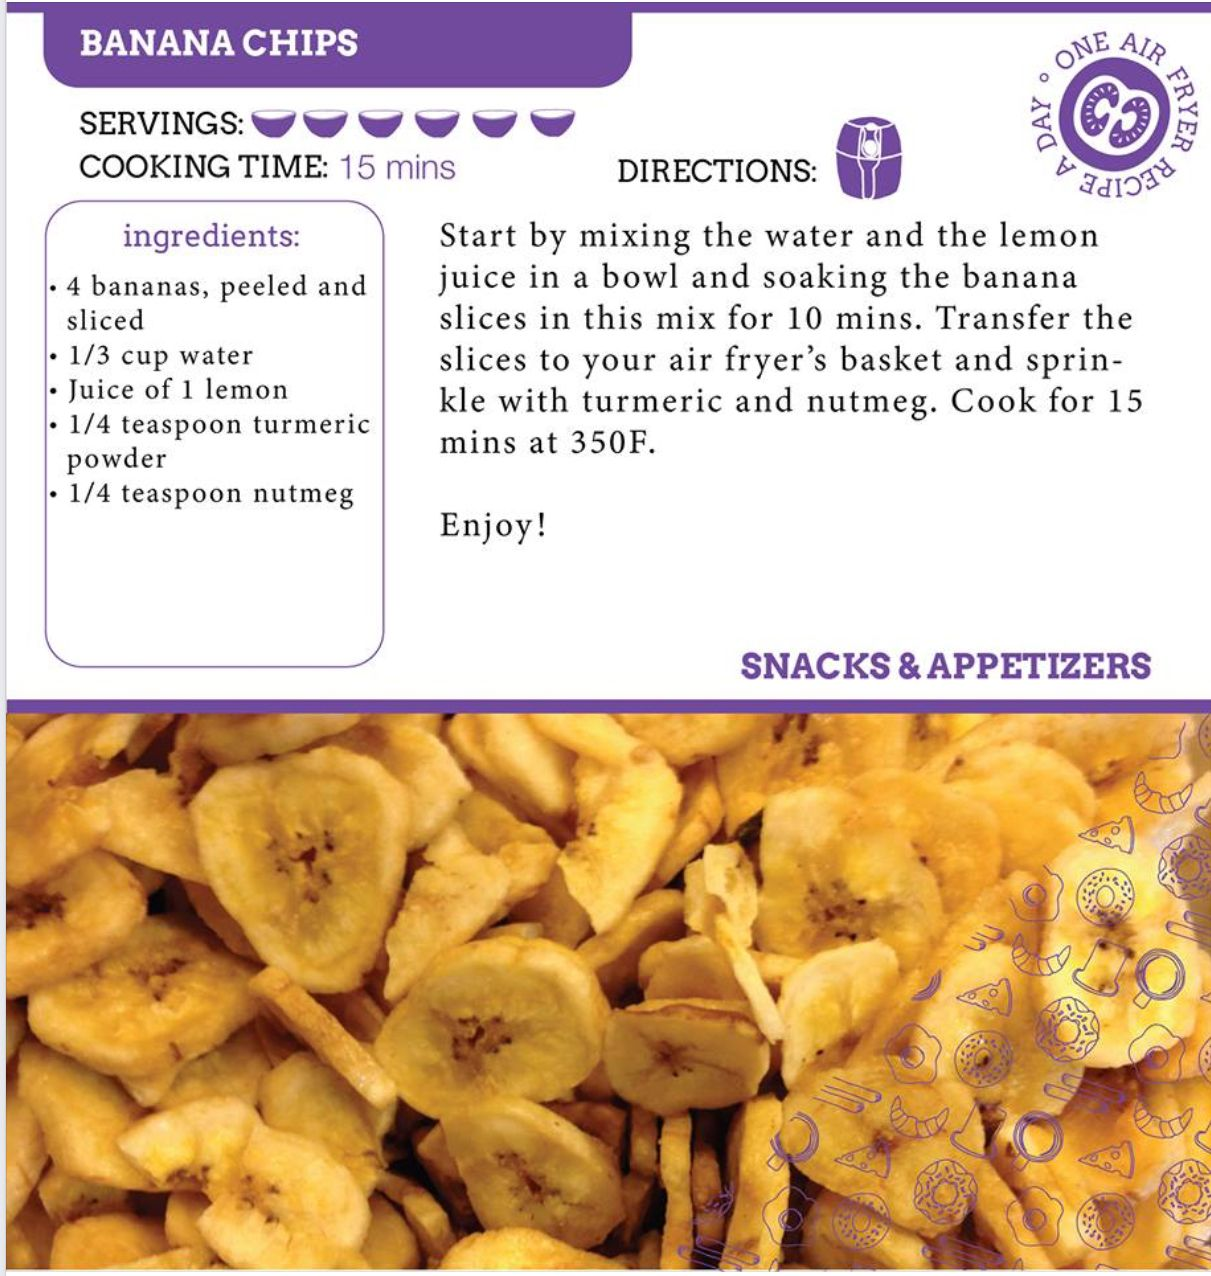 Pin by Suzette Angell on Air fryer recipes Banana chips